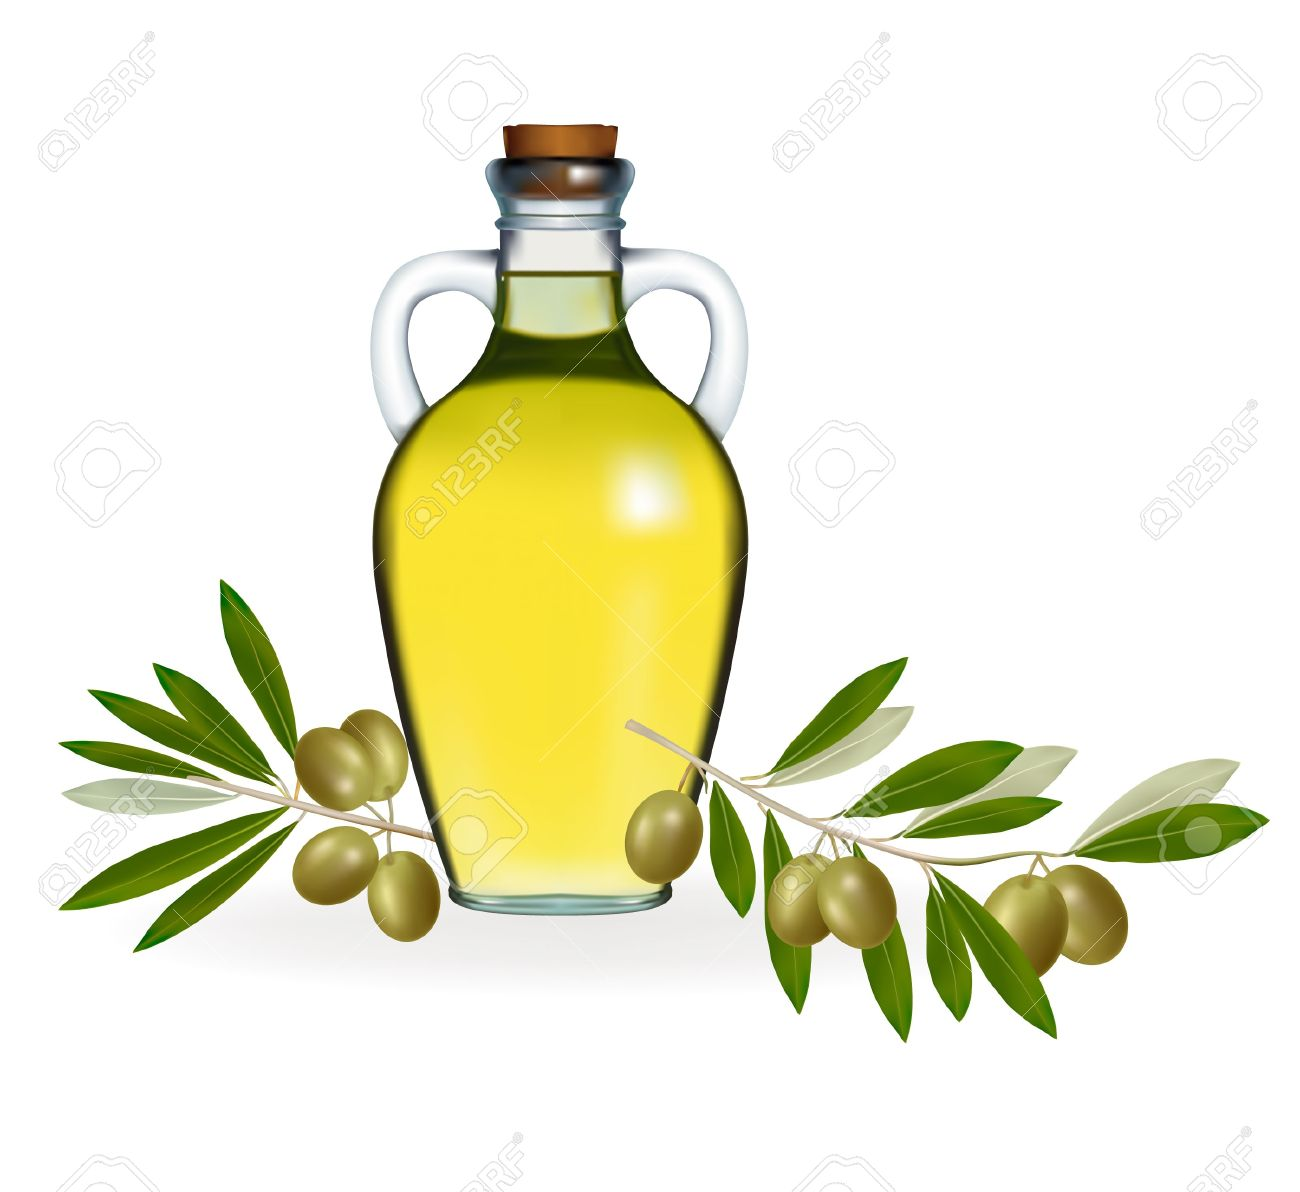 Olive Oil clipart cartoon Oil Olive Green curling green